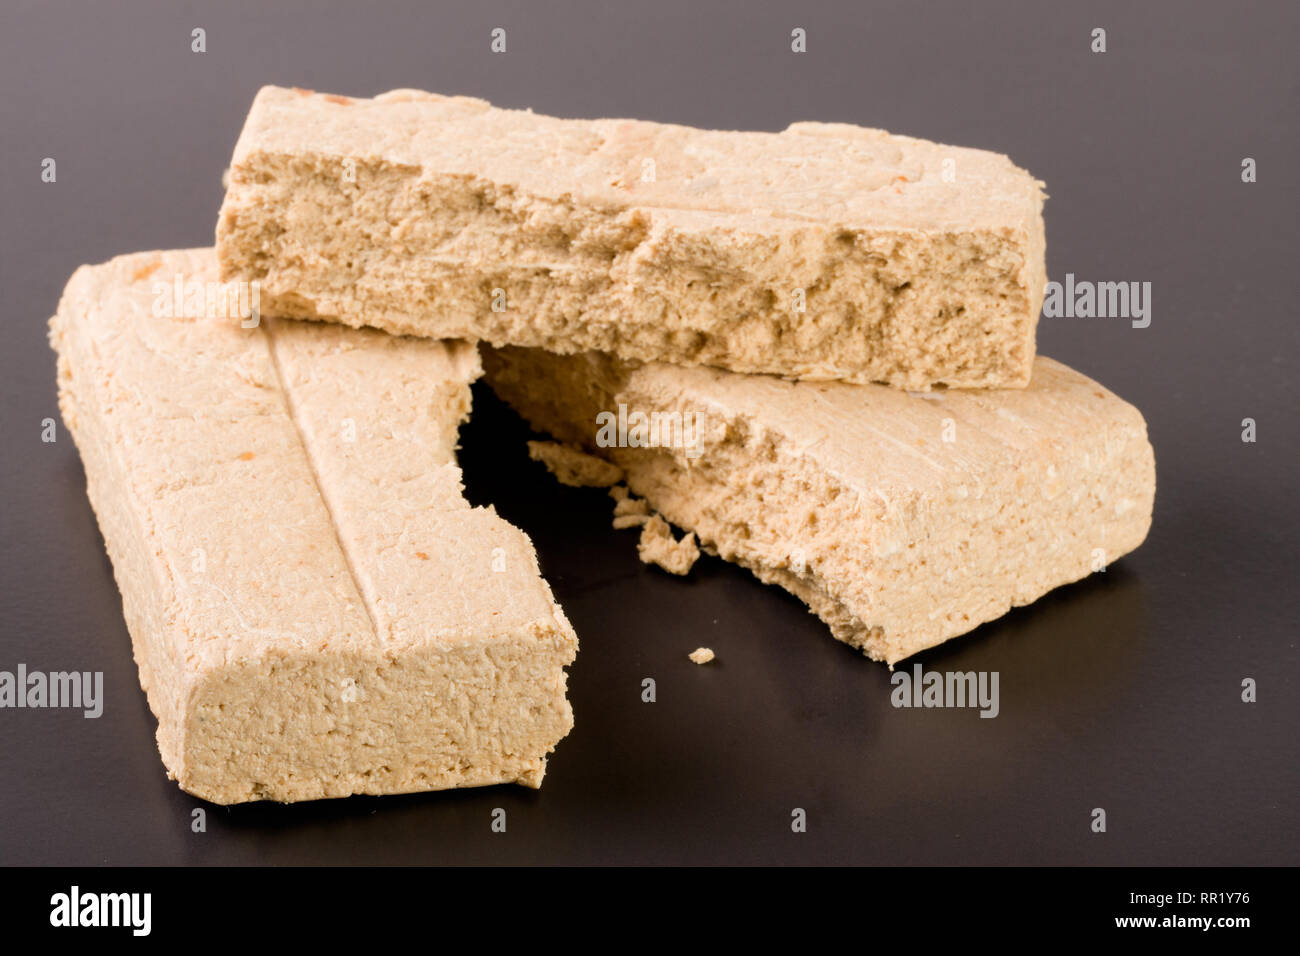 peanut halva on a dark background closeup - Stock Image